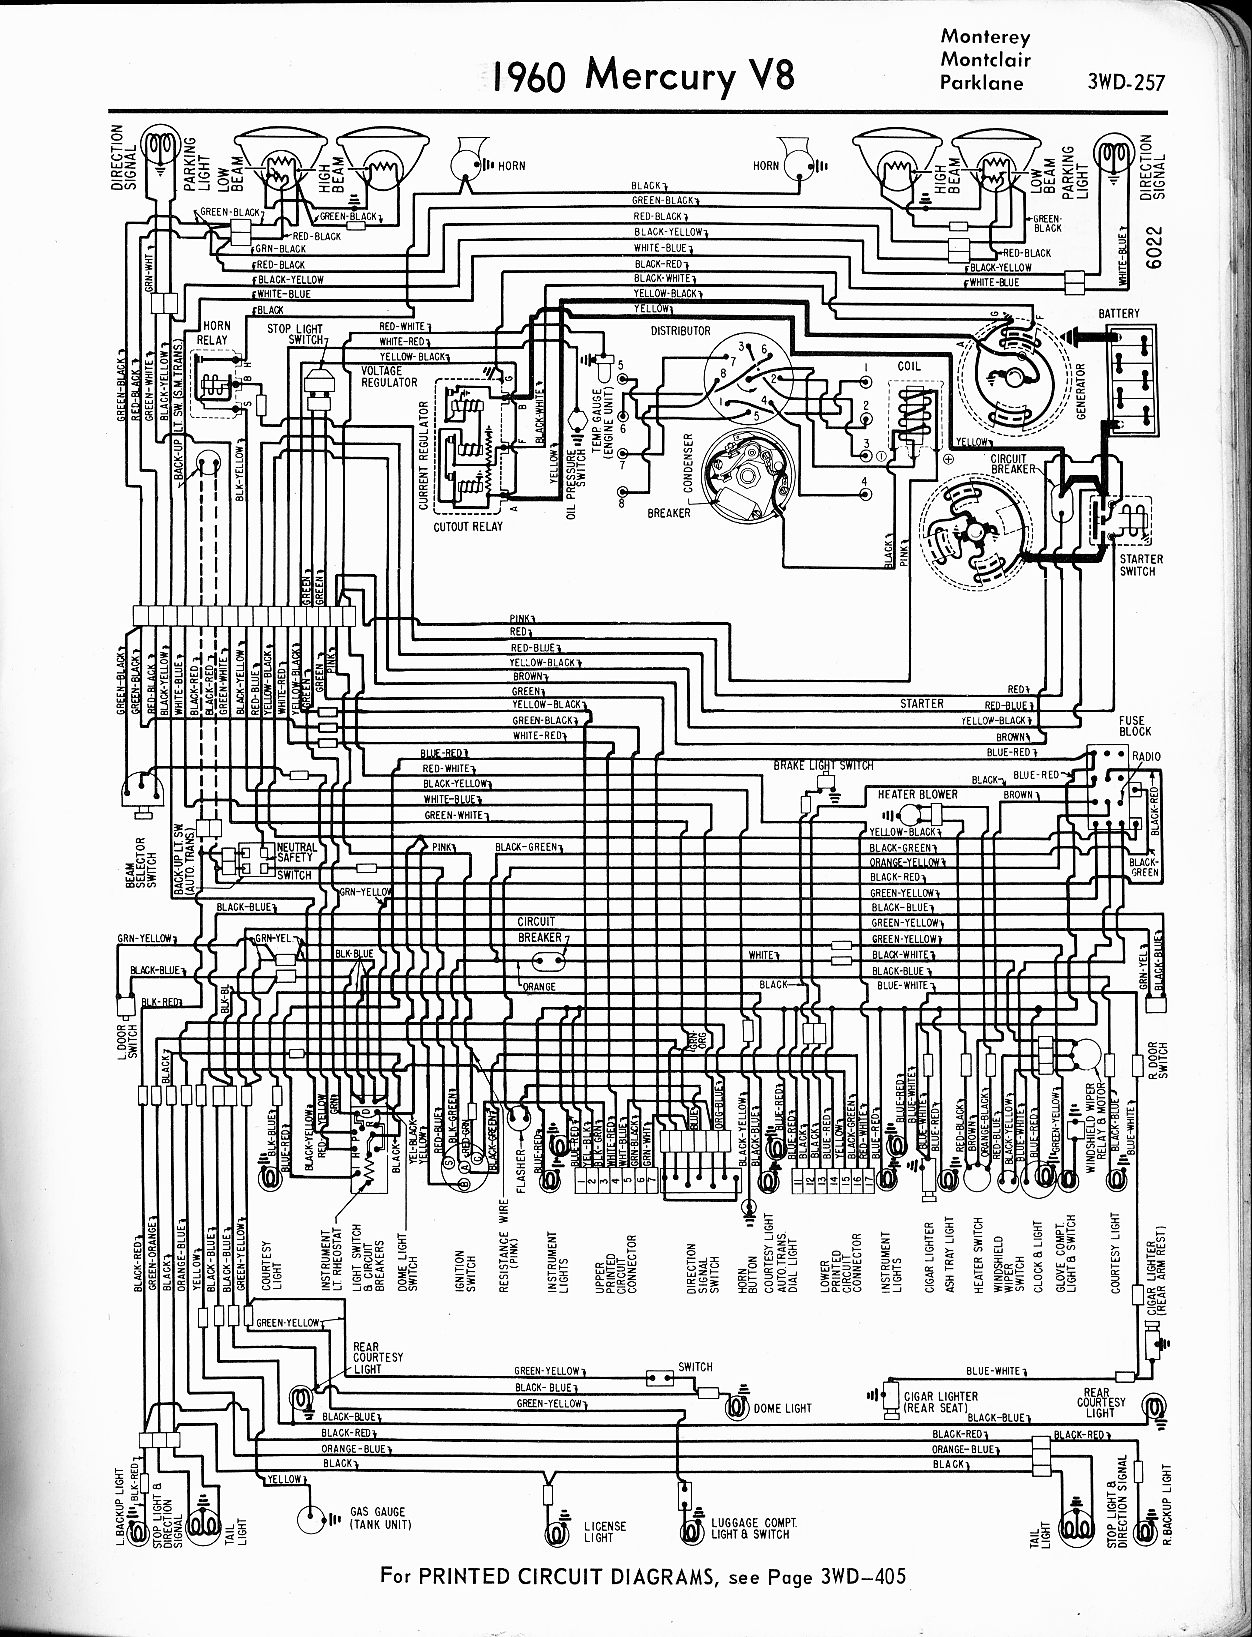 1955 Mercury Wiring Diagram Schematics 75 Optimax Diagrams The Old Car Manual Project Outboard Control